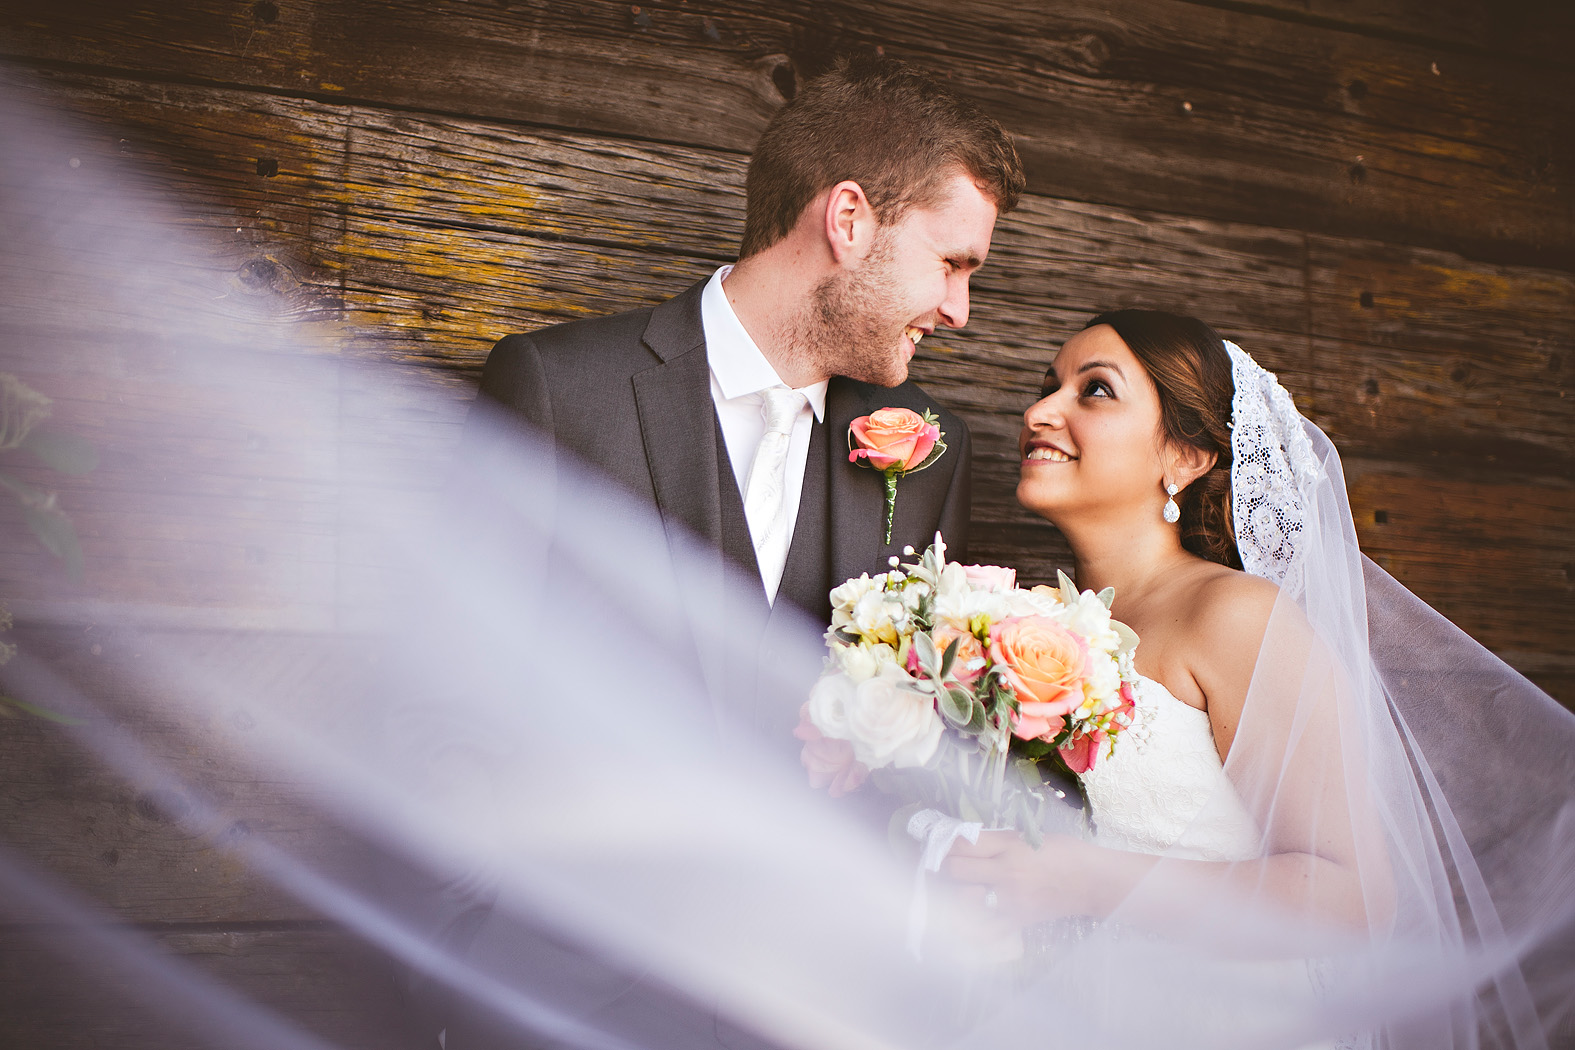 multicultural wedding at tithe barn